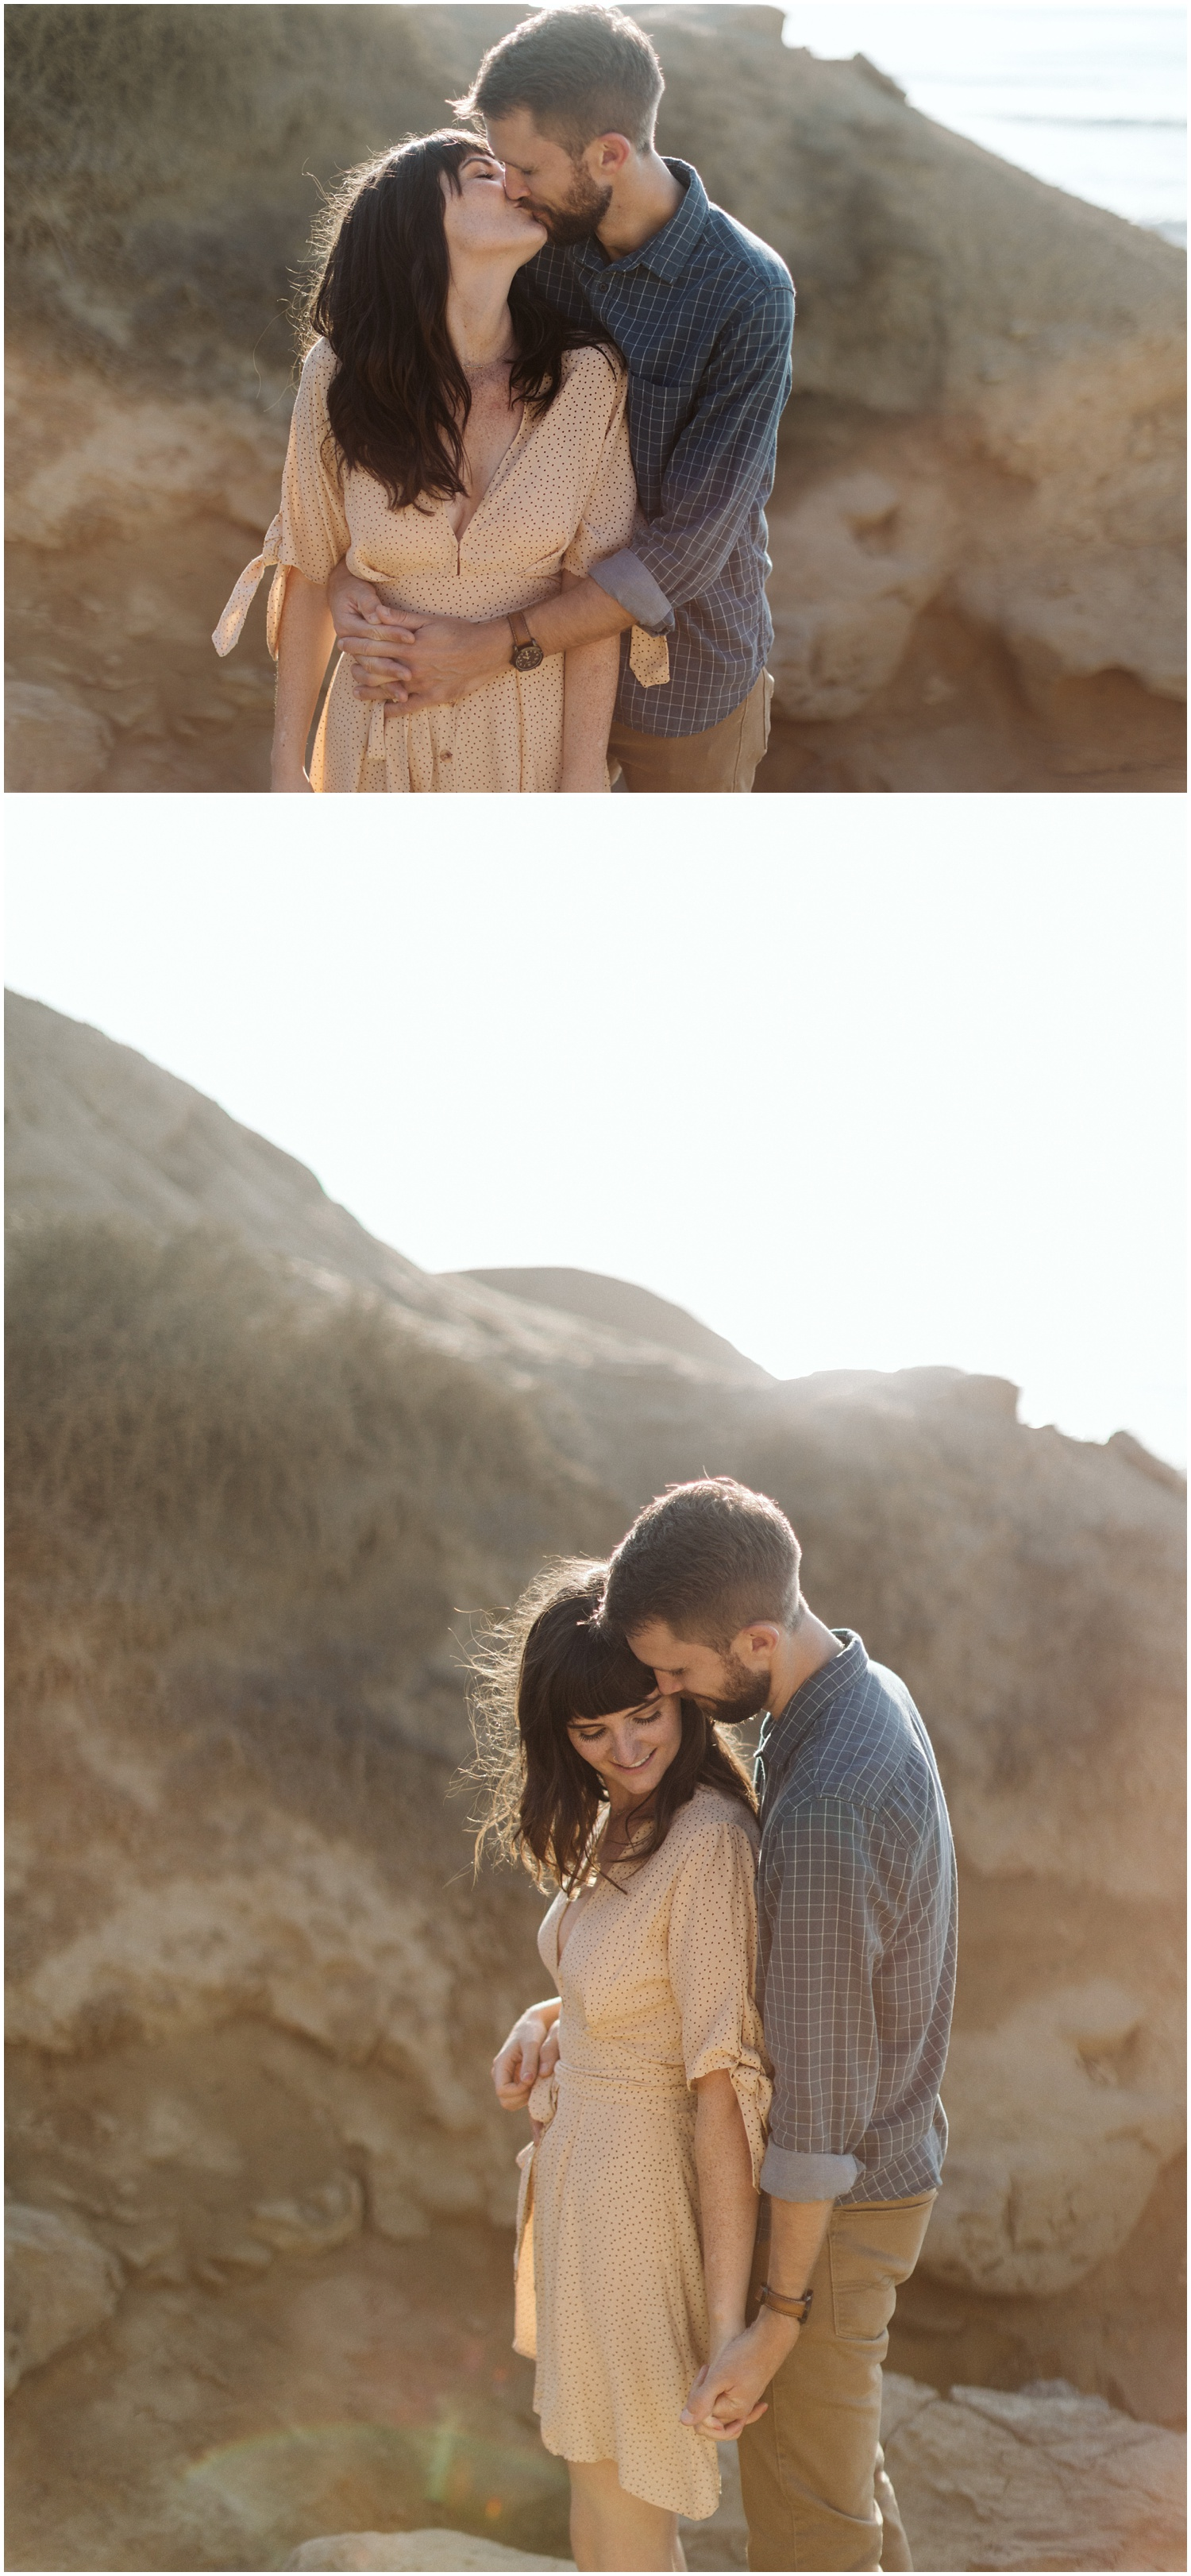 Kathryn & Heath San Diego Sunset Cliffs Engagement Session